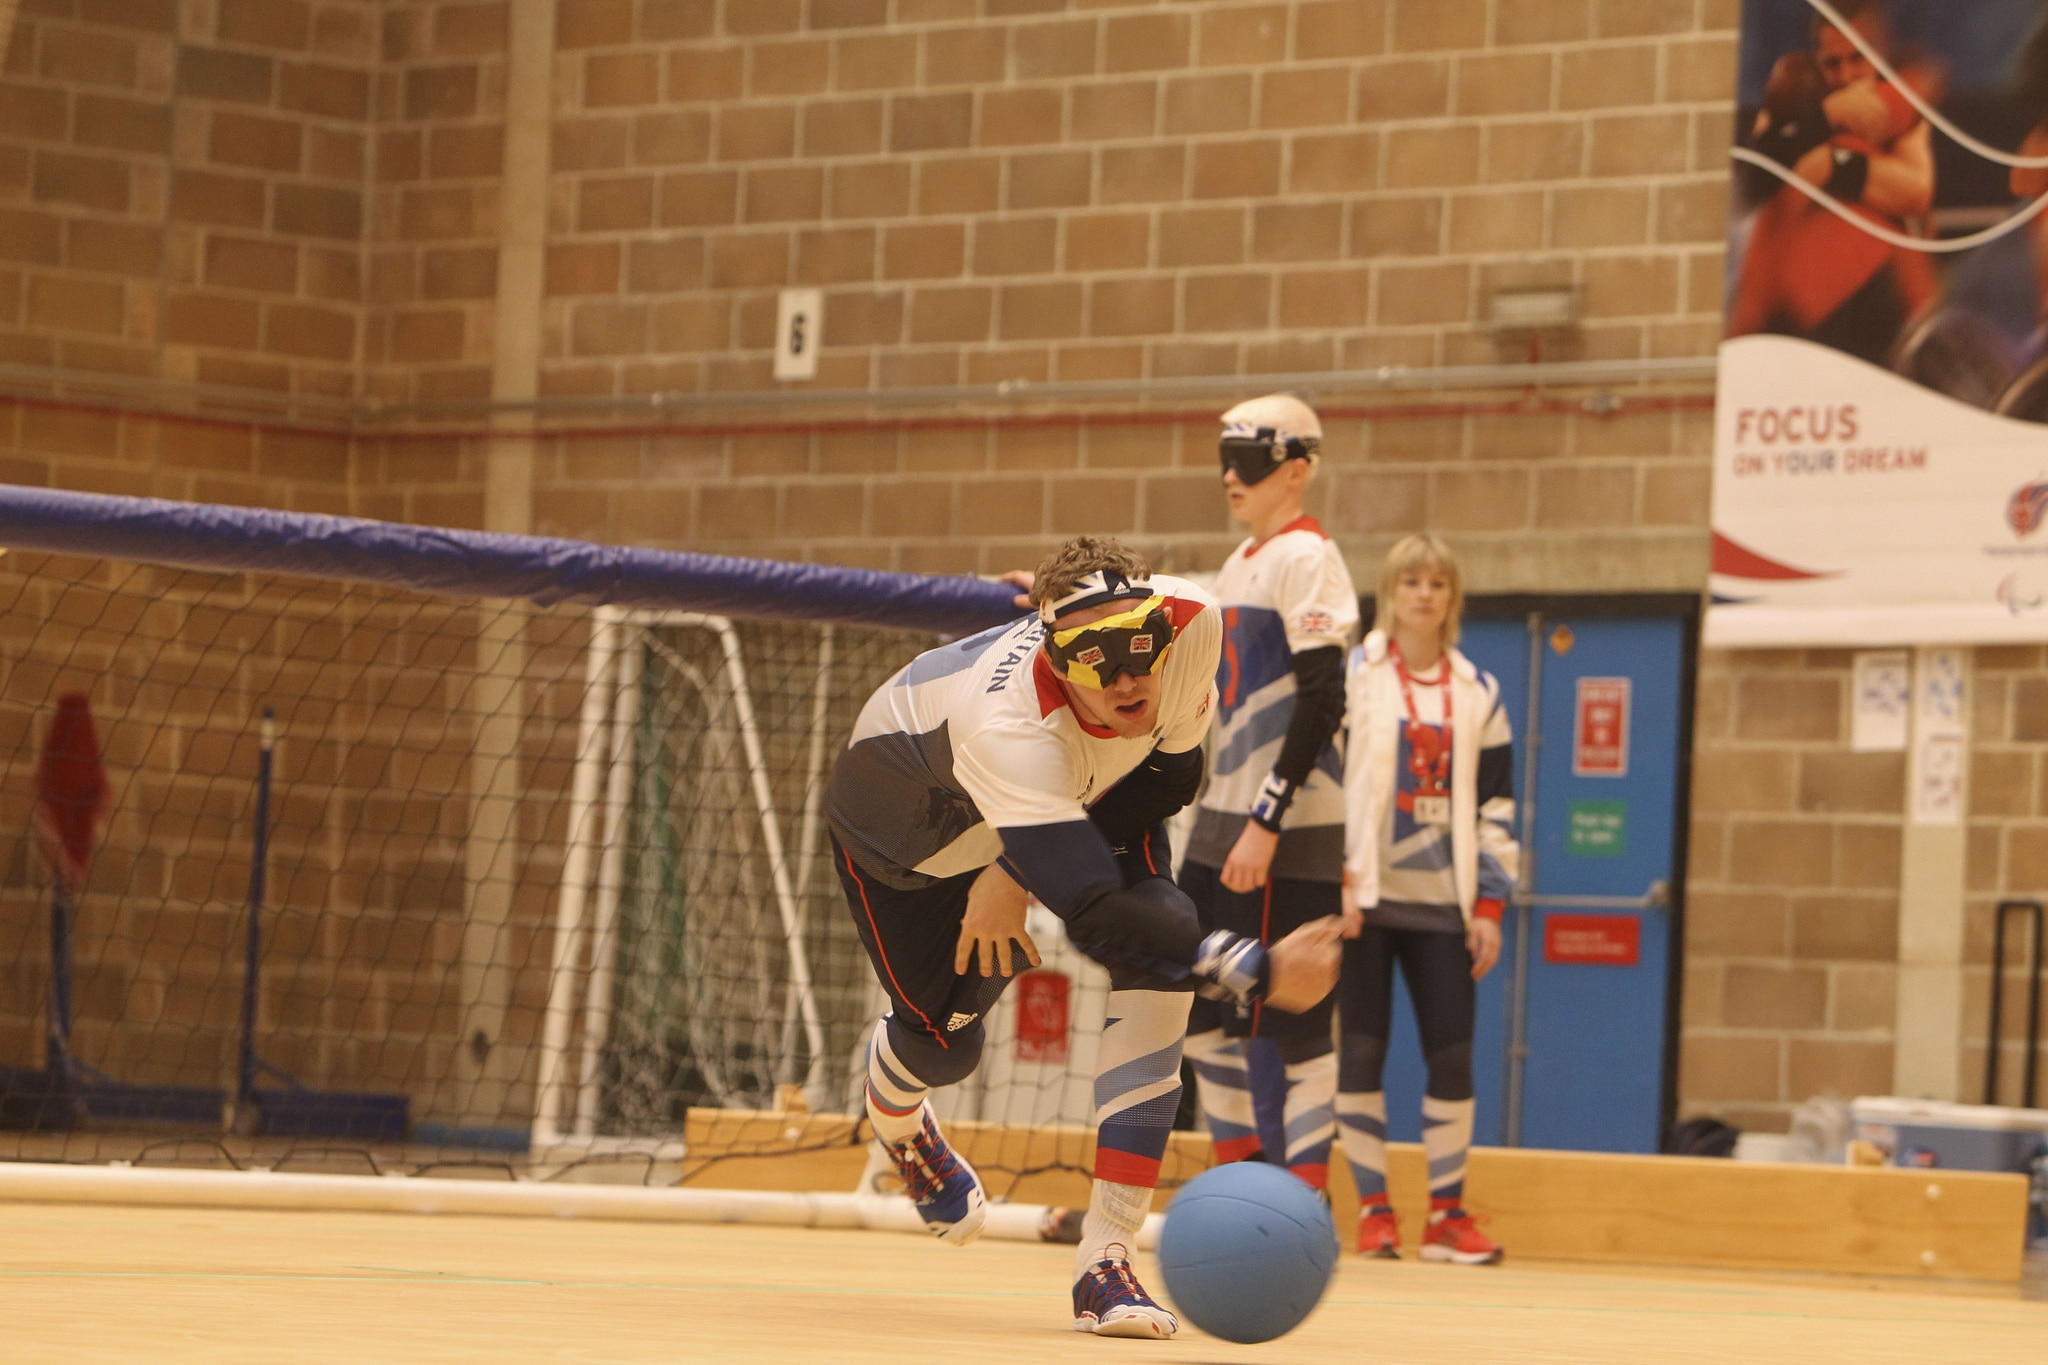 Photo of a man playing Goalball